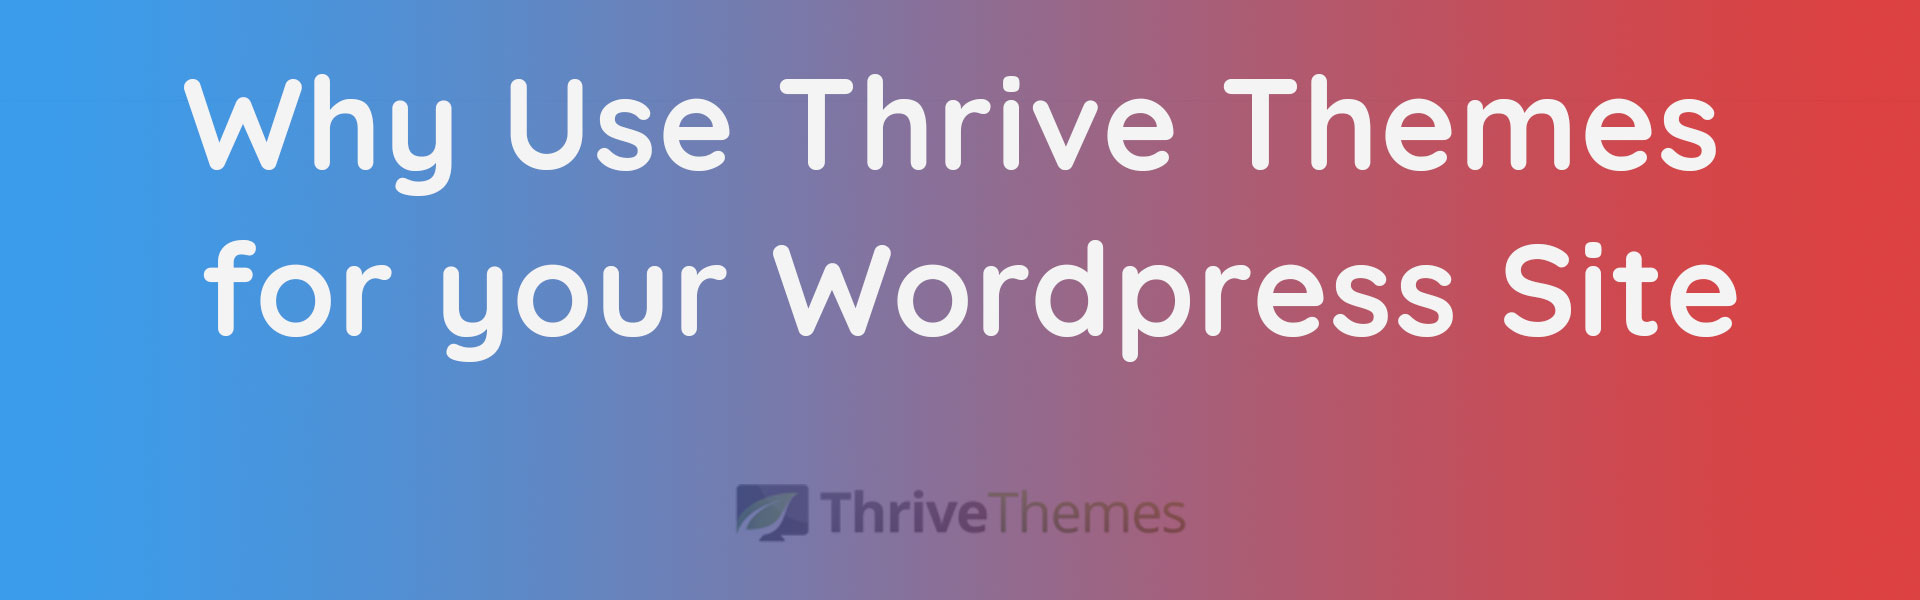 Buy WordPress Themes Thrive Themes Sale Cheap